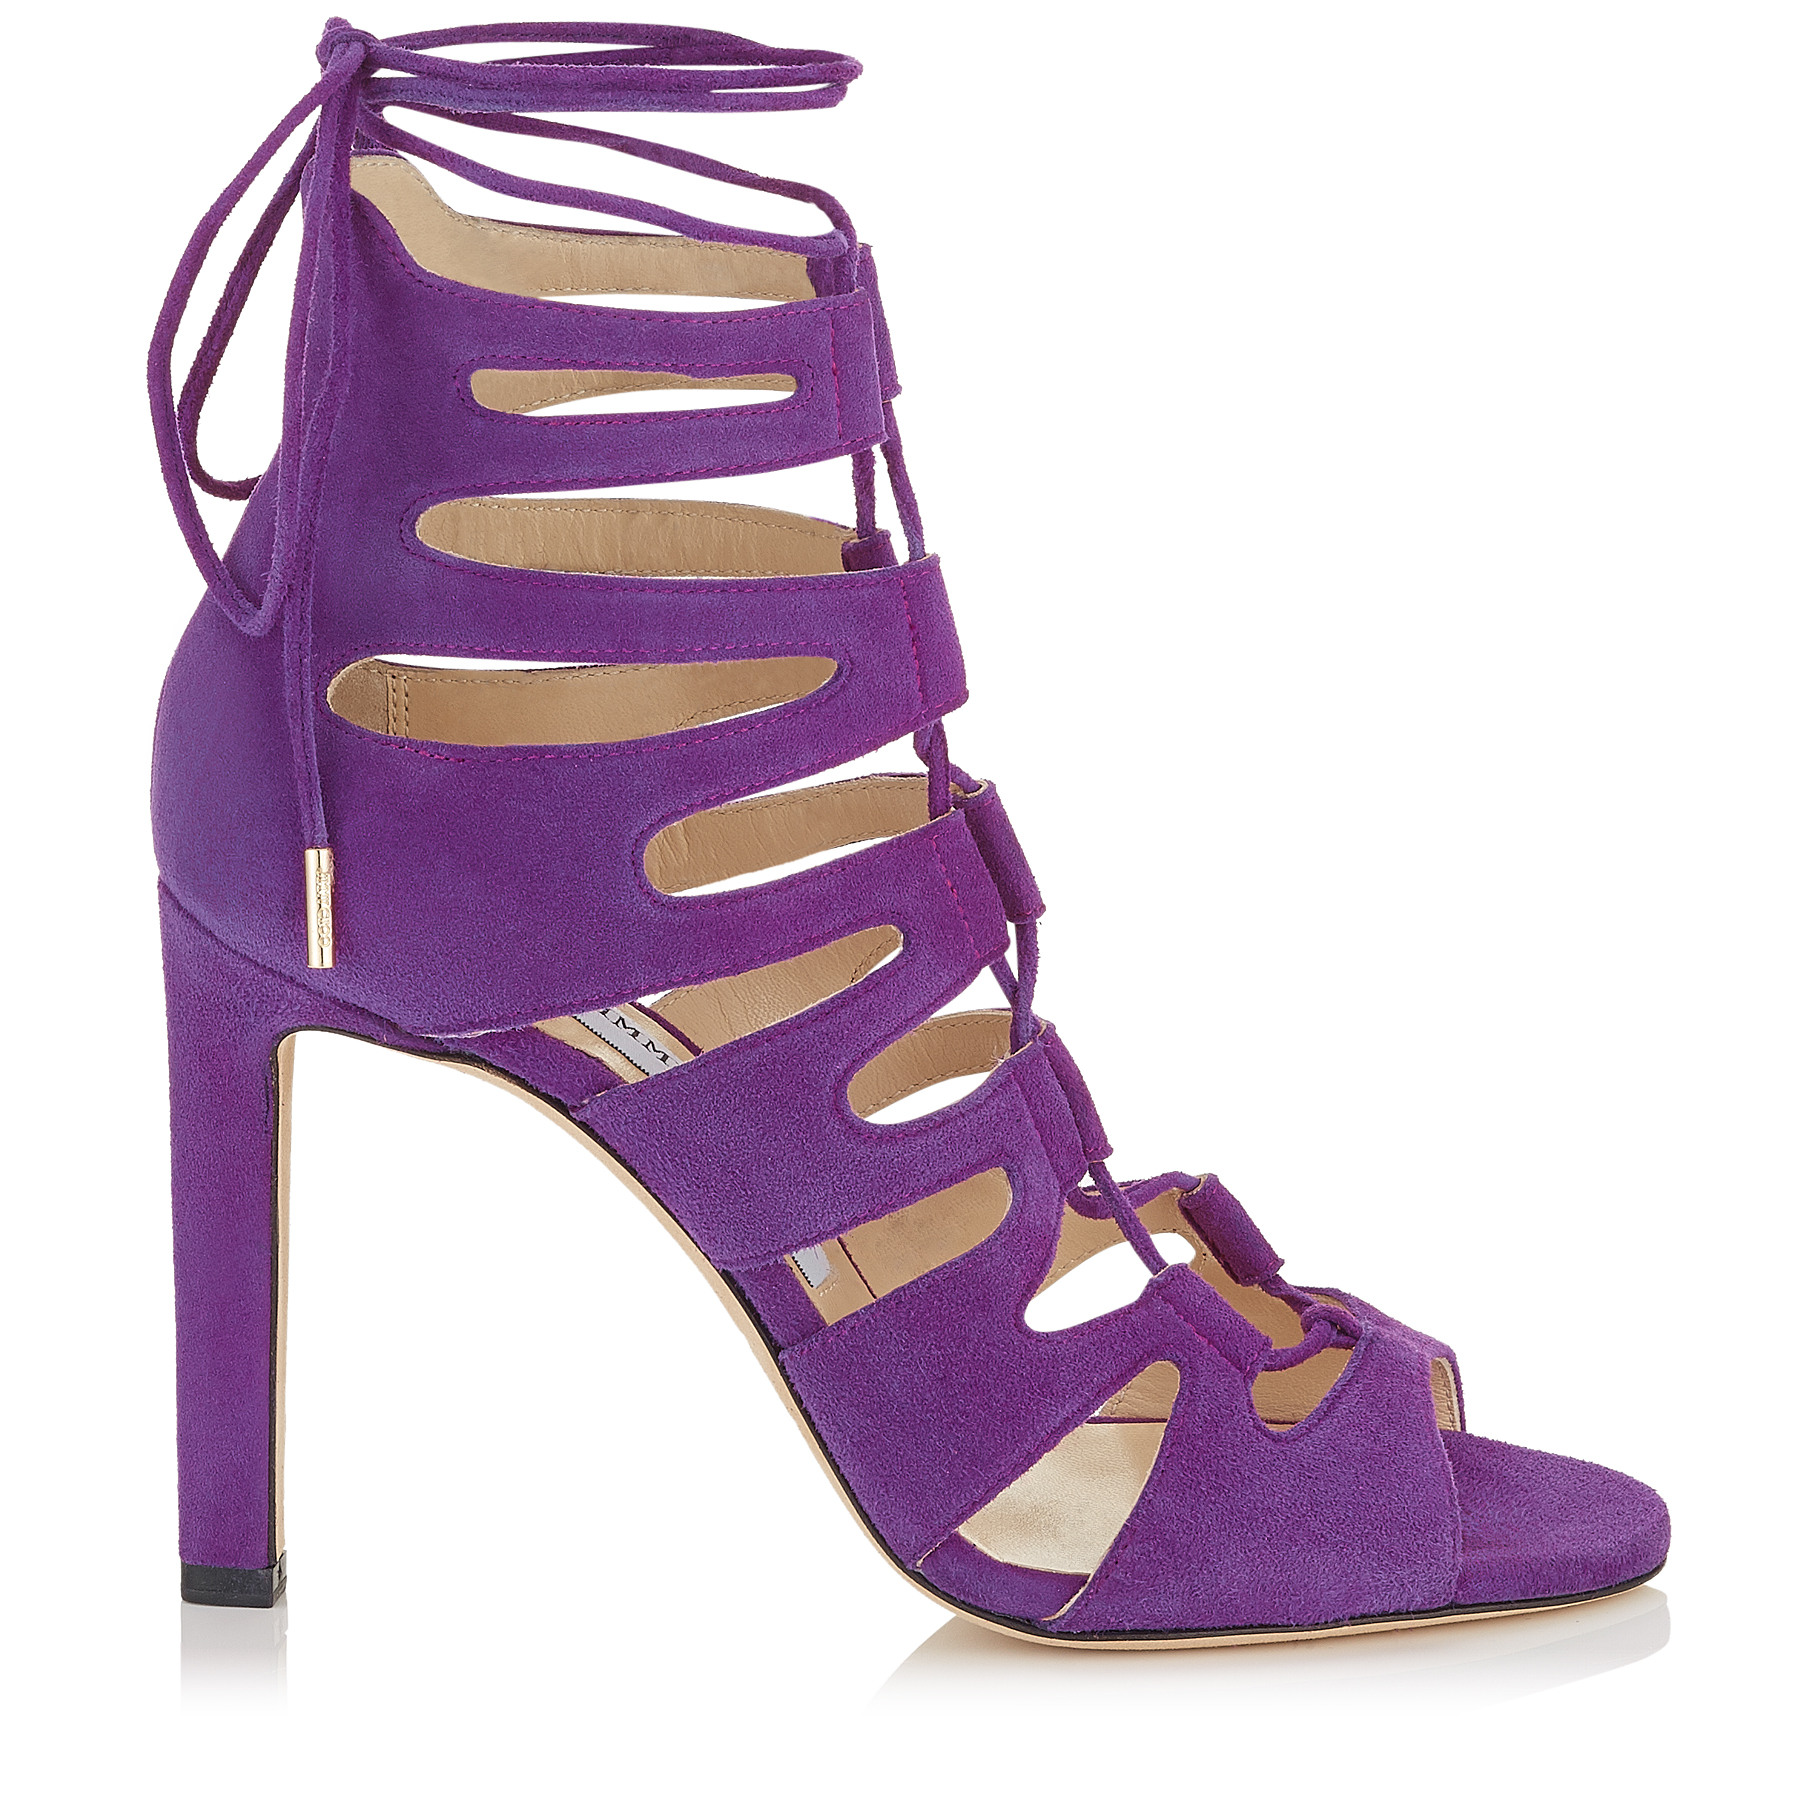 HITCH 100 Madeline Suede Strappy Sandals